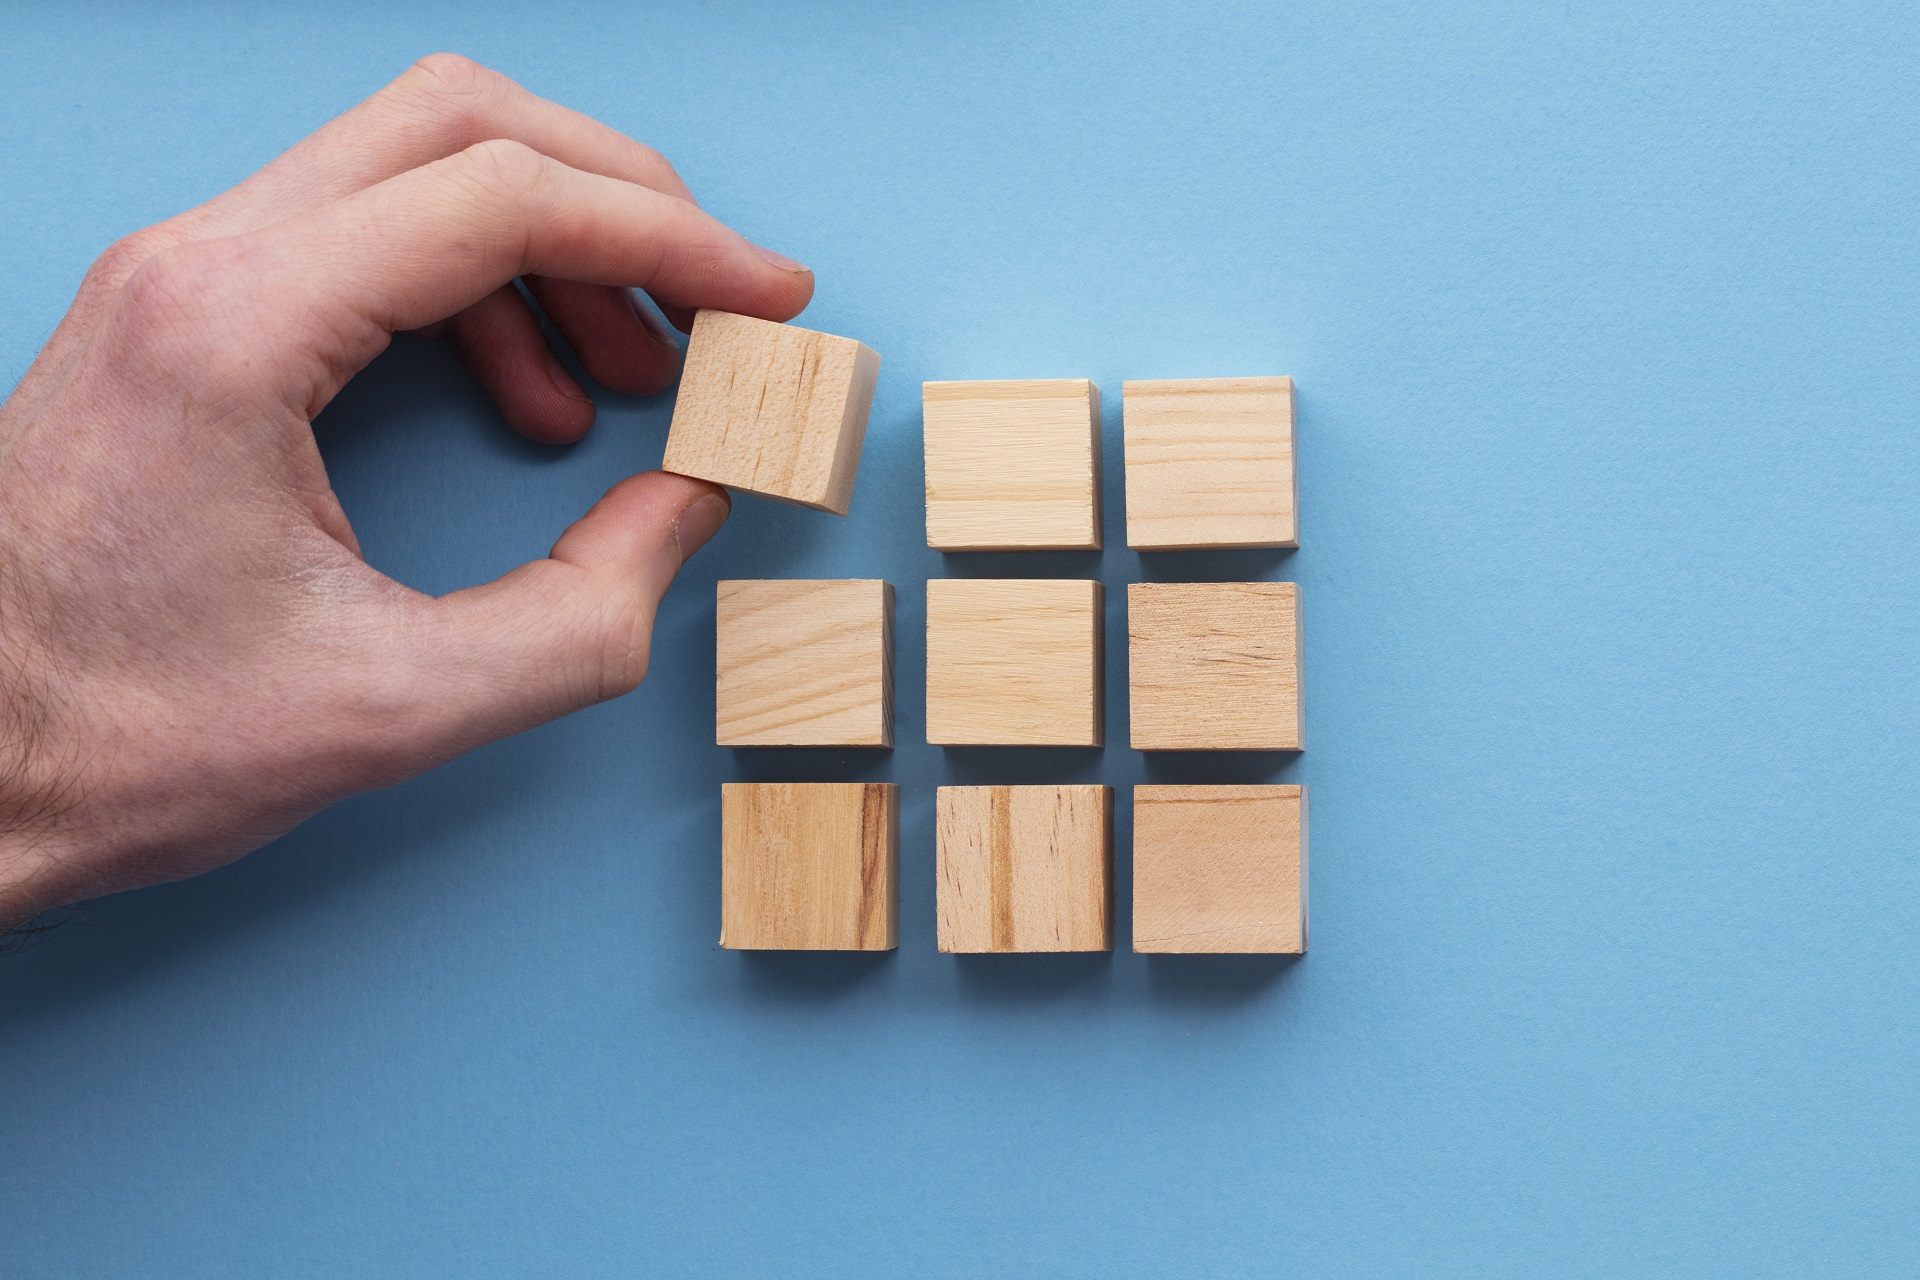 Hand placing wooden blocks in a pattern, symbolizing building something